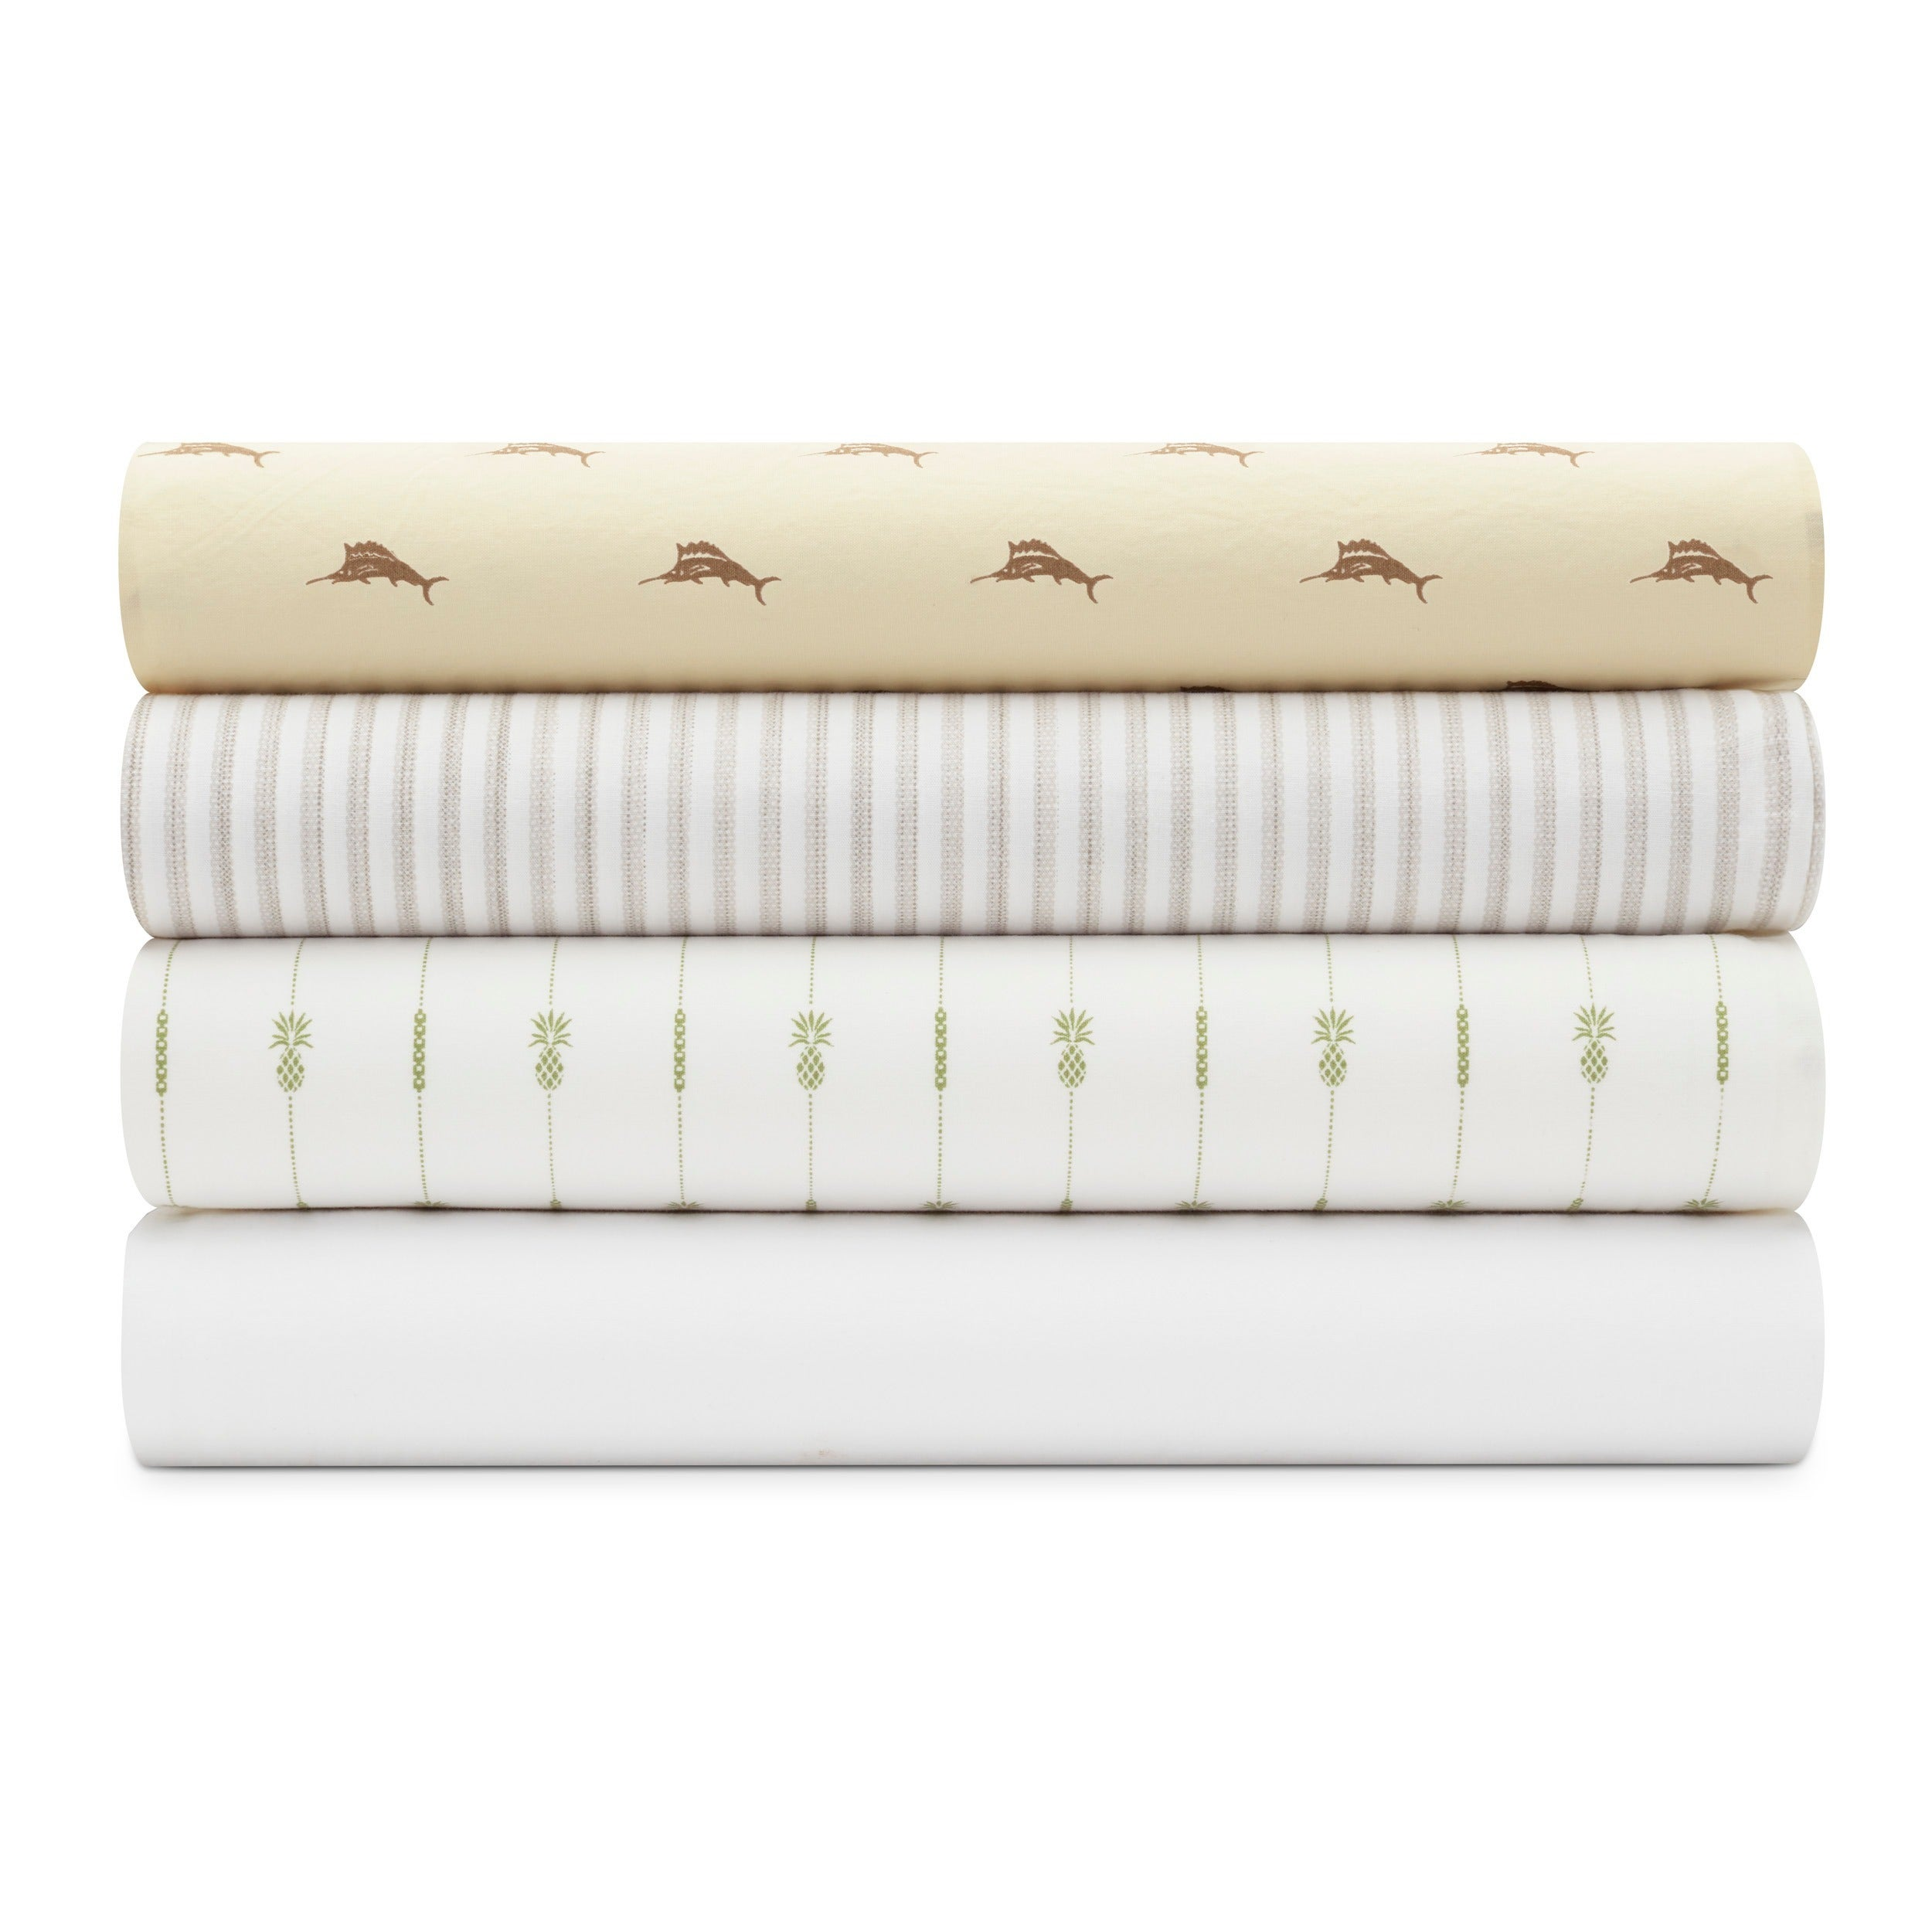 Tommy bahama cotton percale sheet sets free shipping today tommy bahama cotton percale sheet sets free shipping today overstock 18388832 arubaitofo Gallery